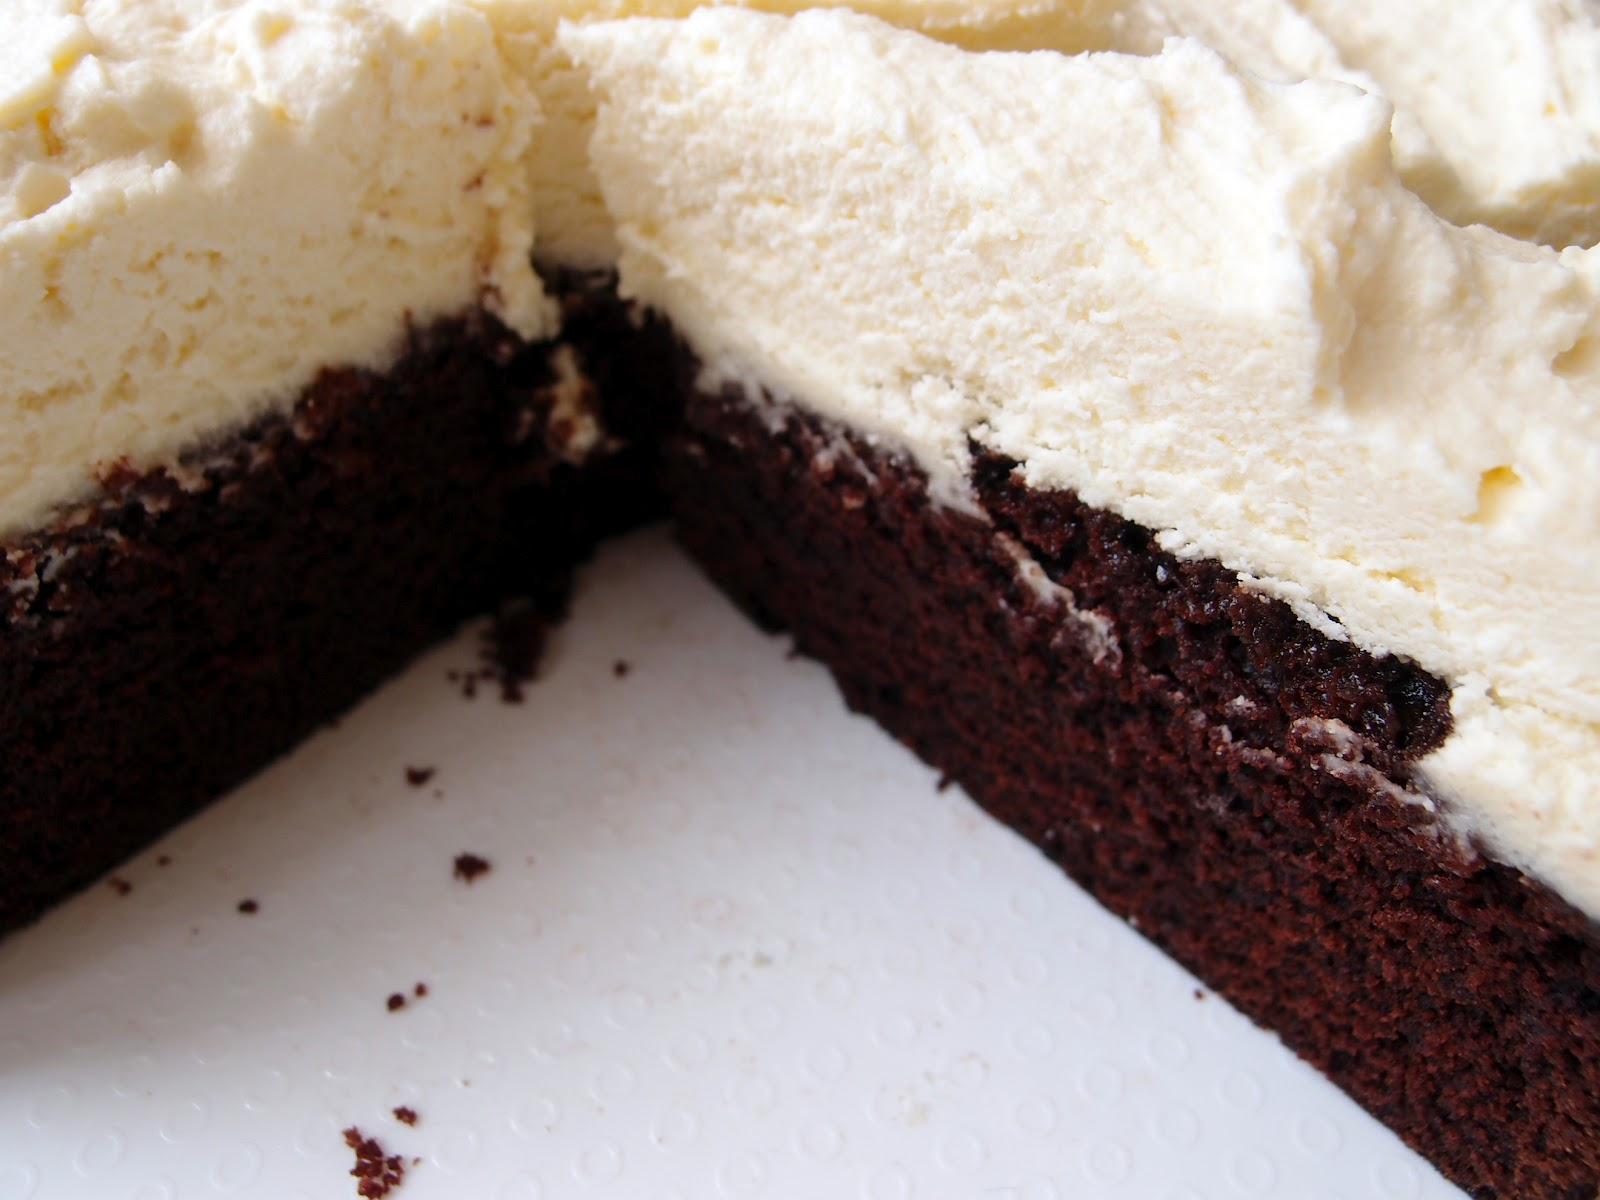 ... and Honey: Easy Chocolate Cake with Fluffy White Chocolate Frosting